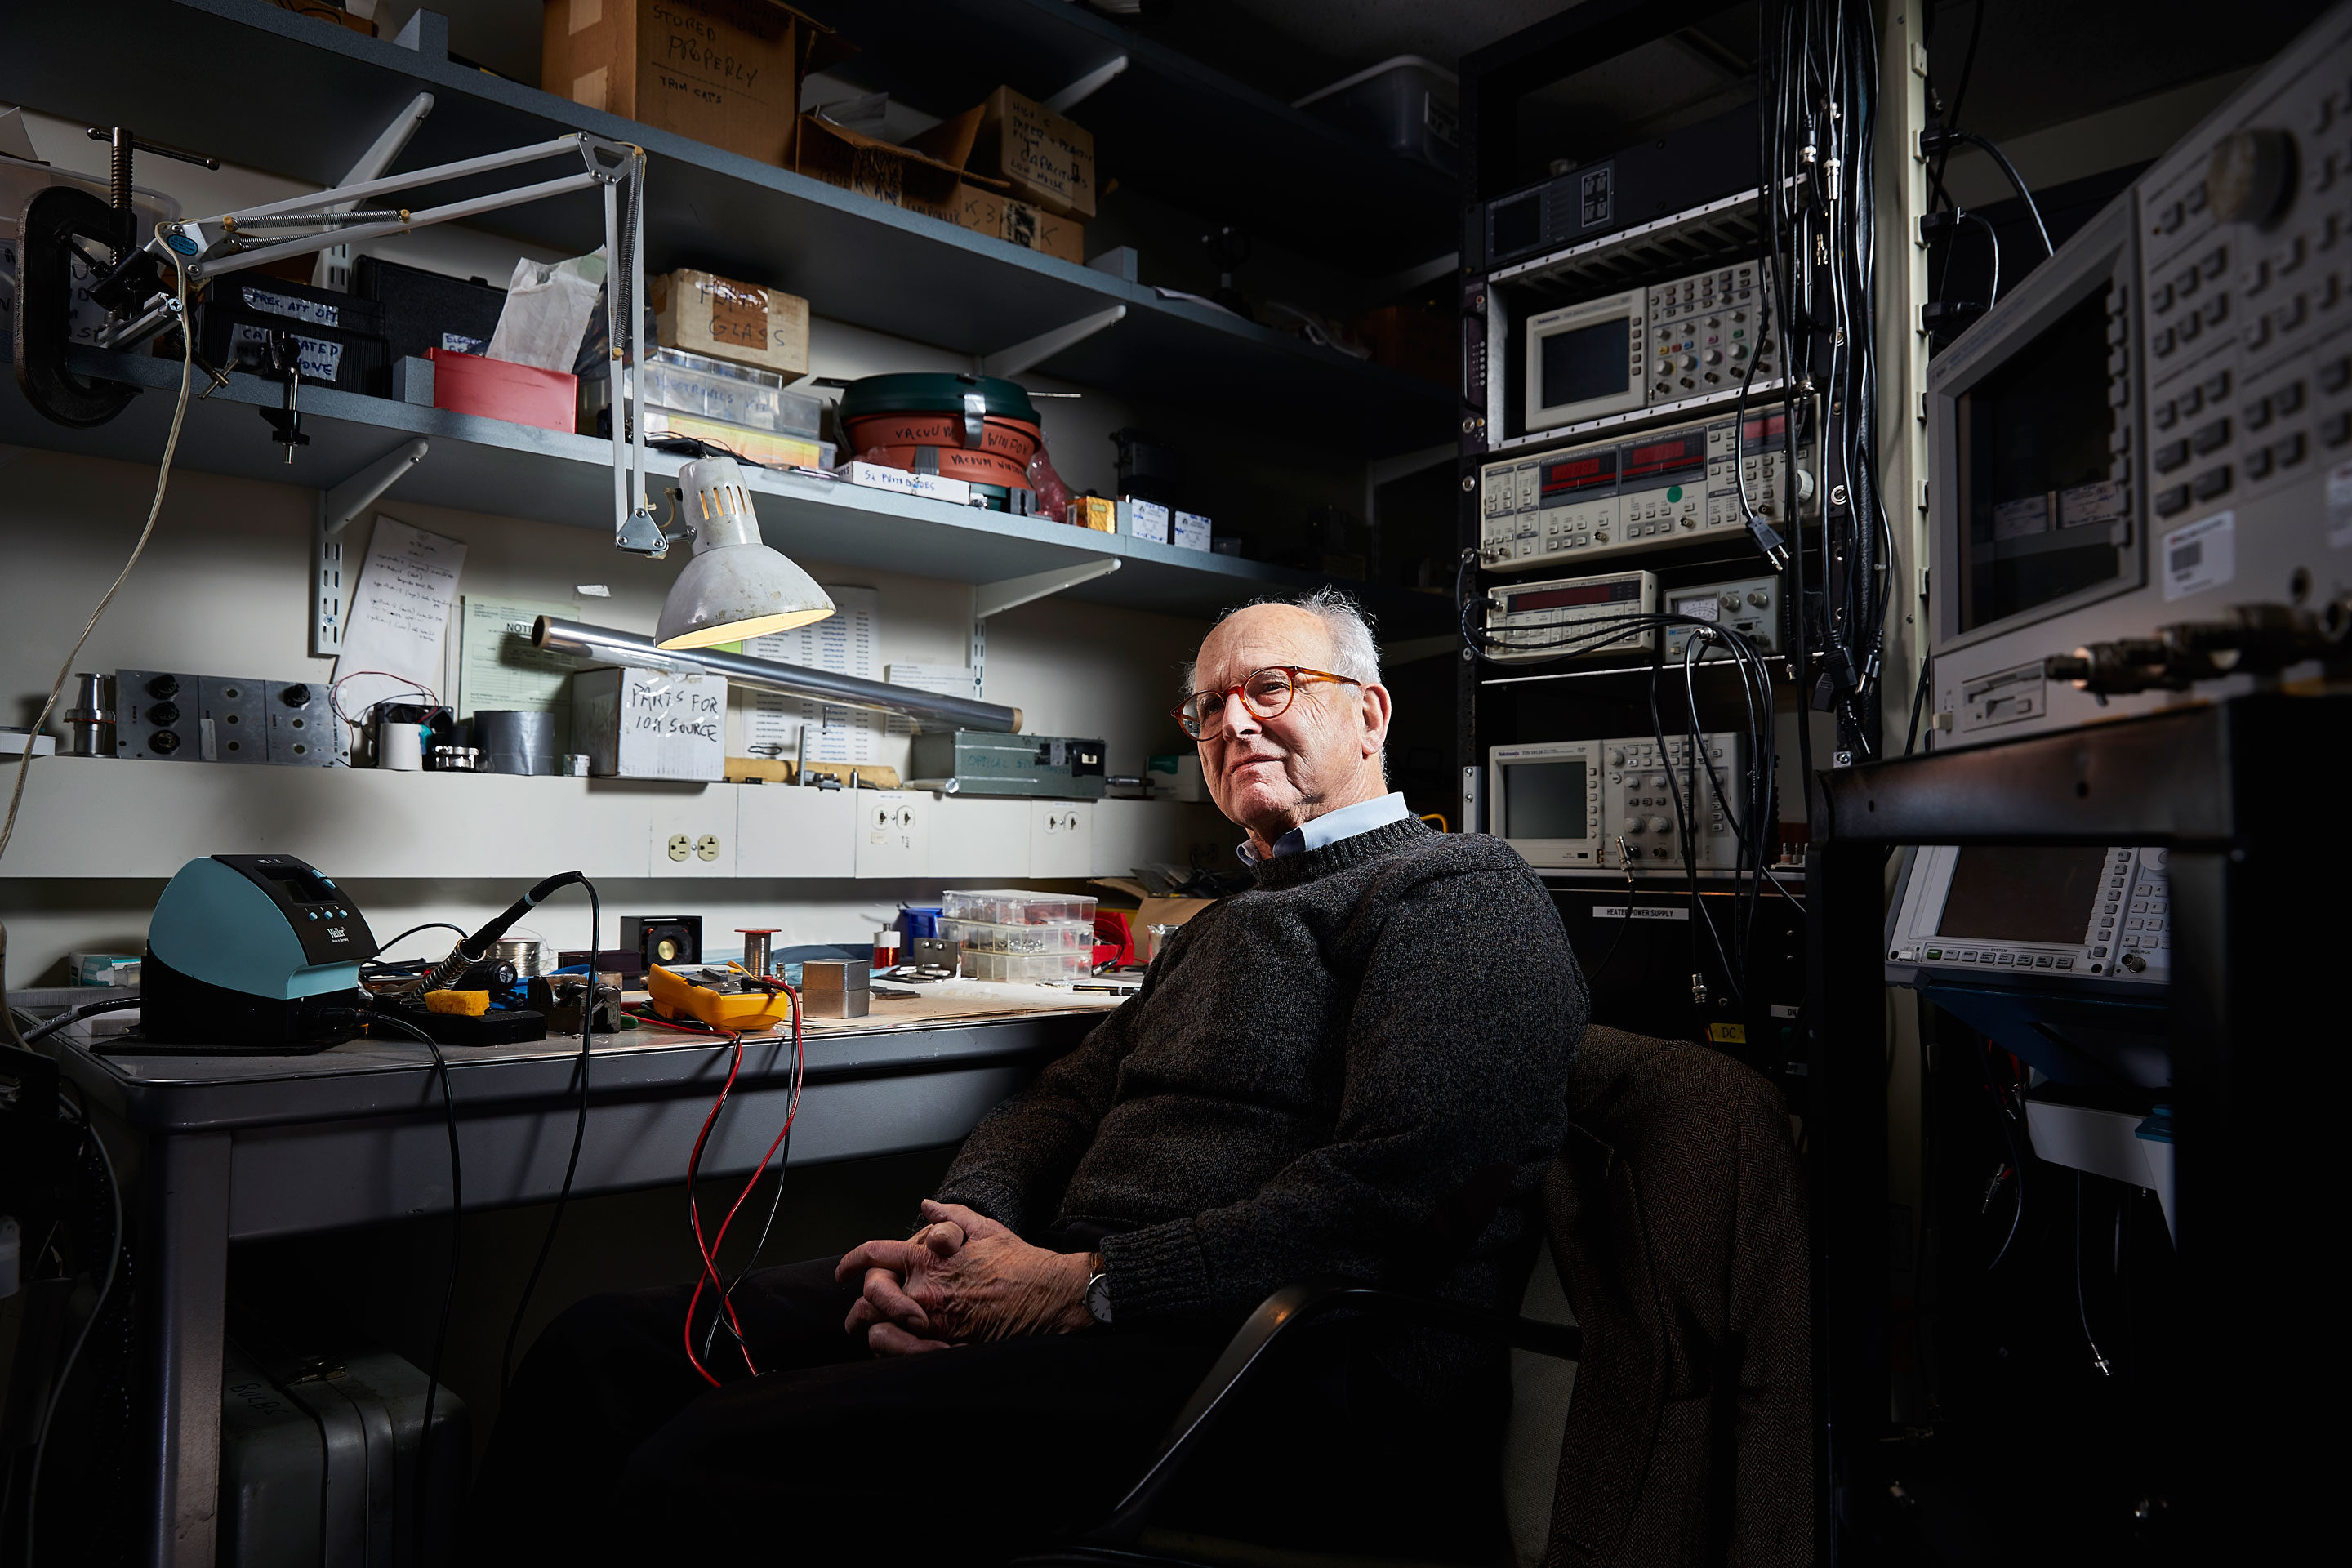 Rainer Weiss in his basement lab at the Massachusetts Institute of Technology.